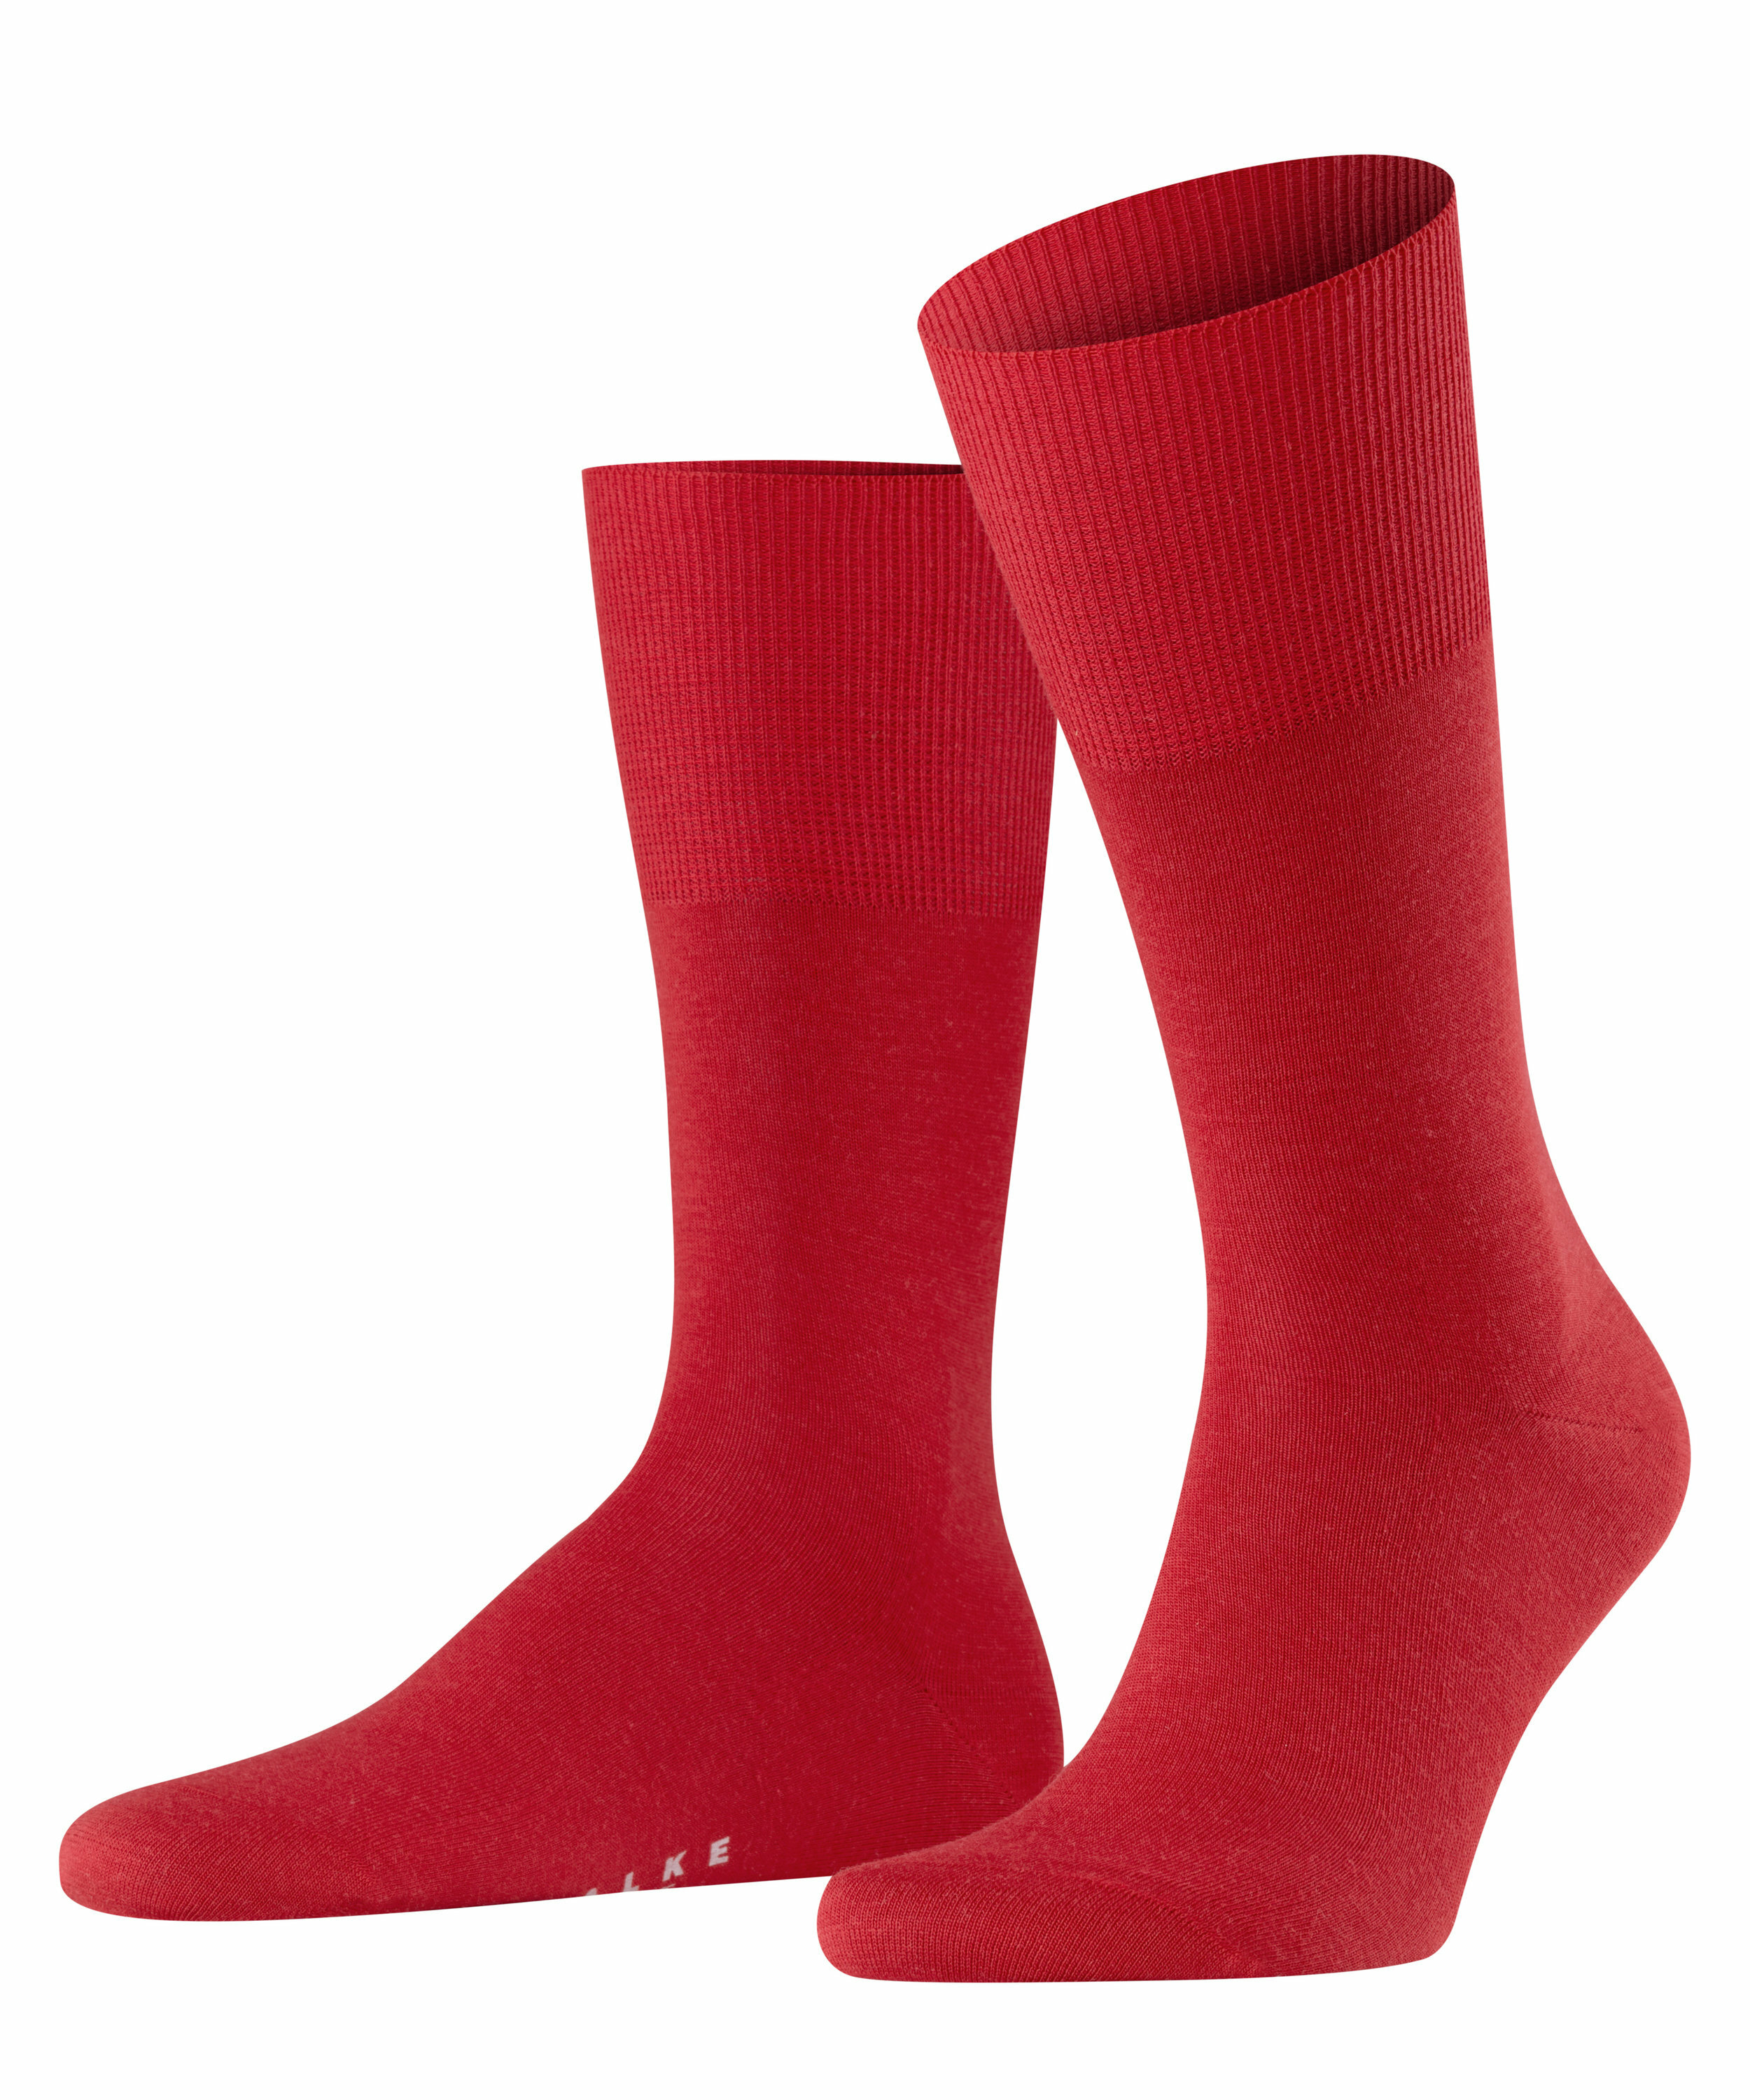 FALKE Airport Herren Socken RED